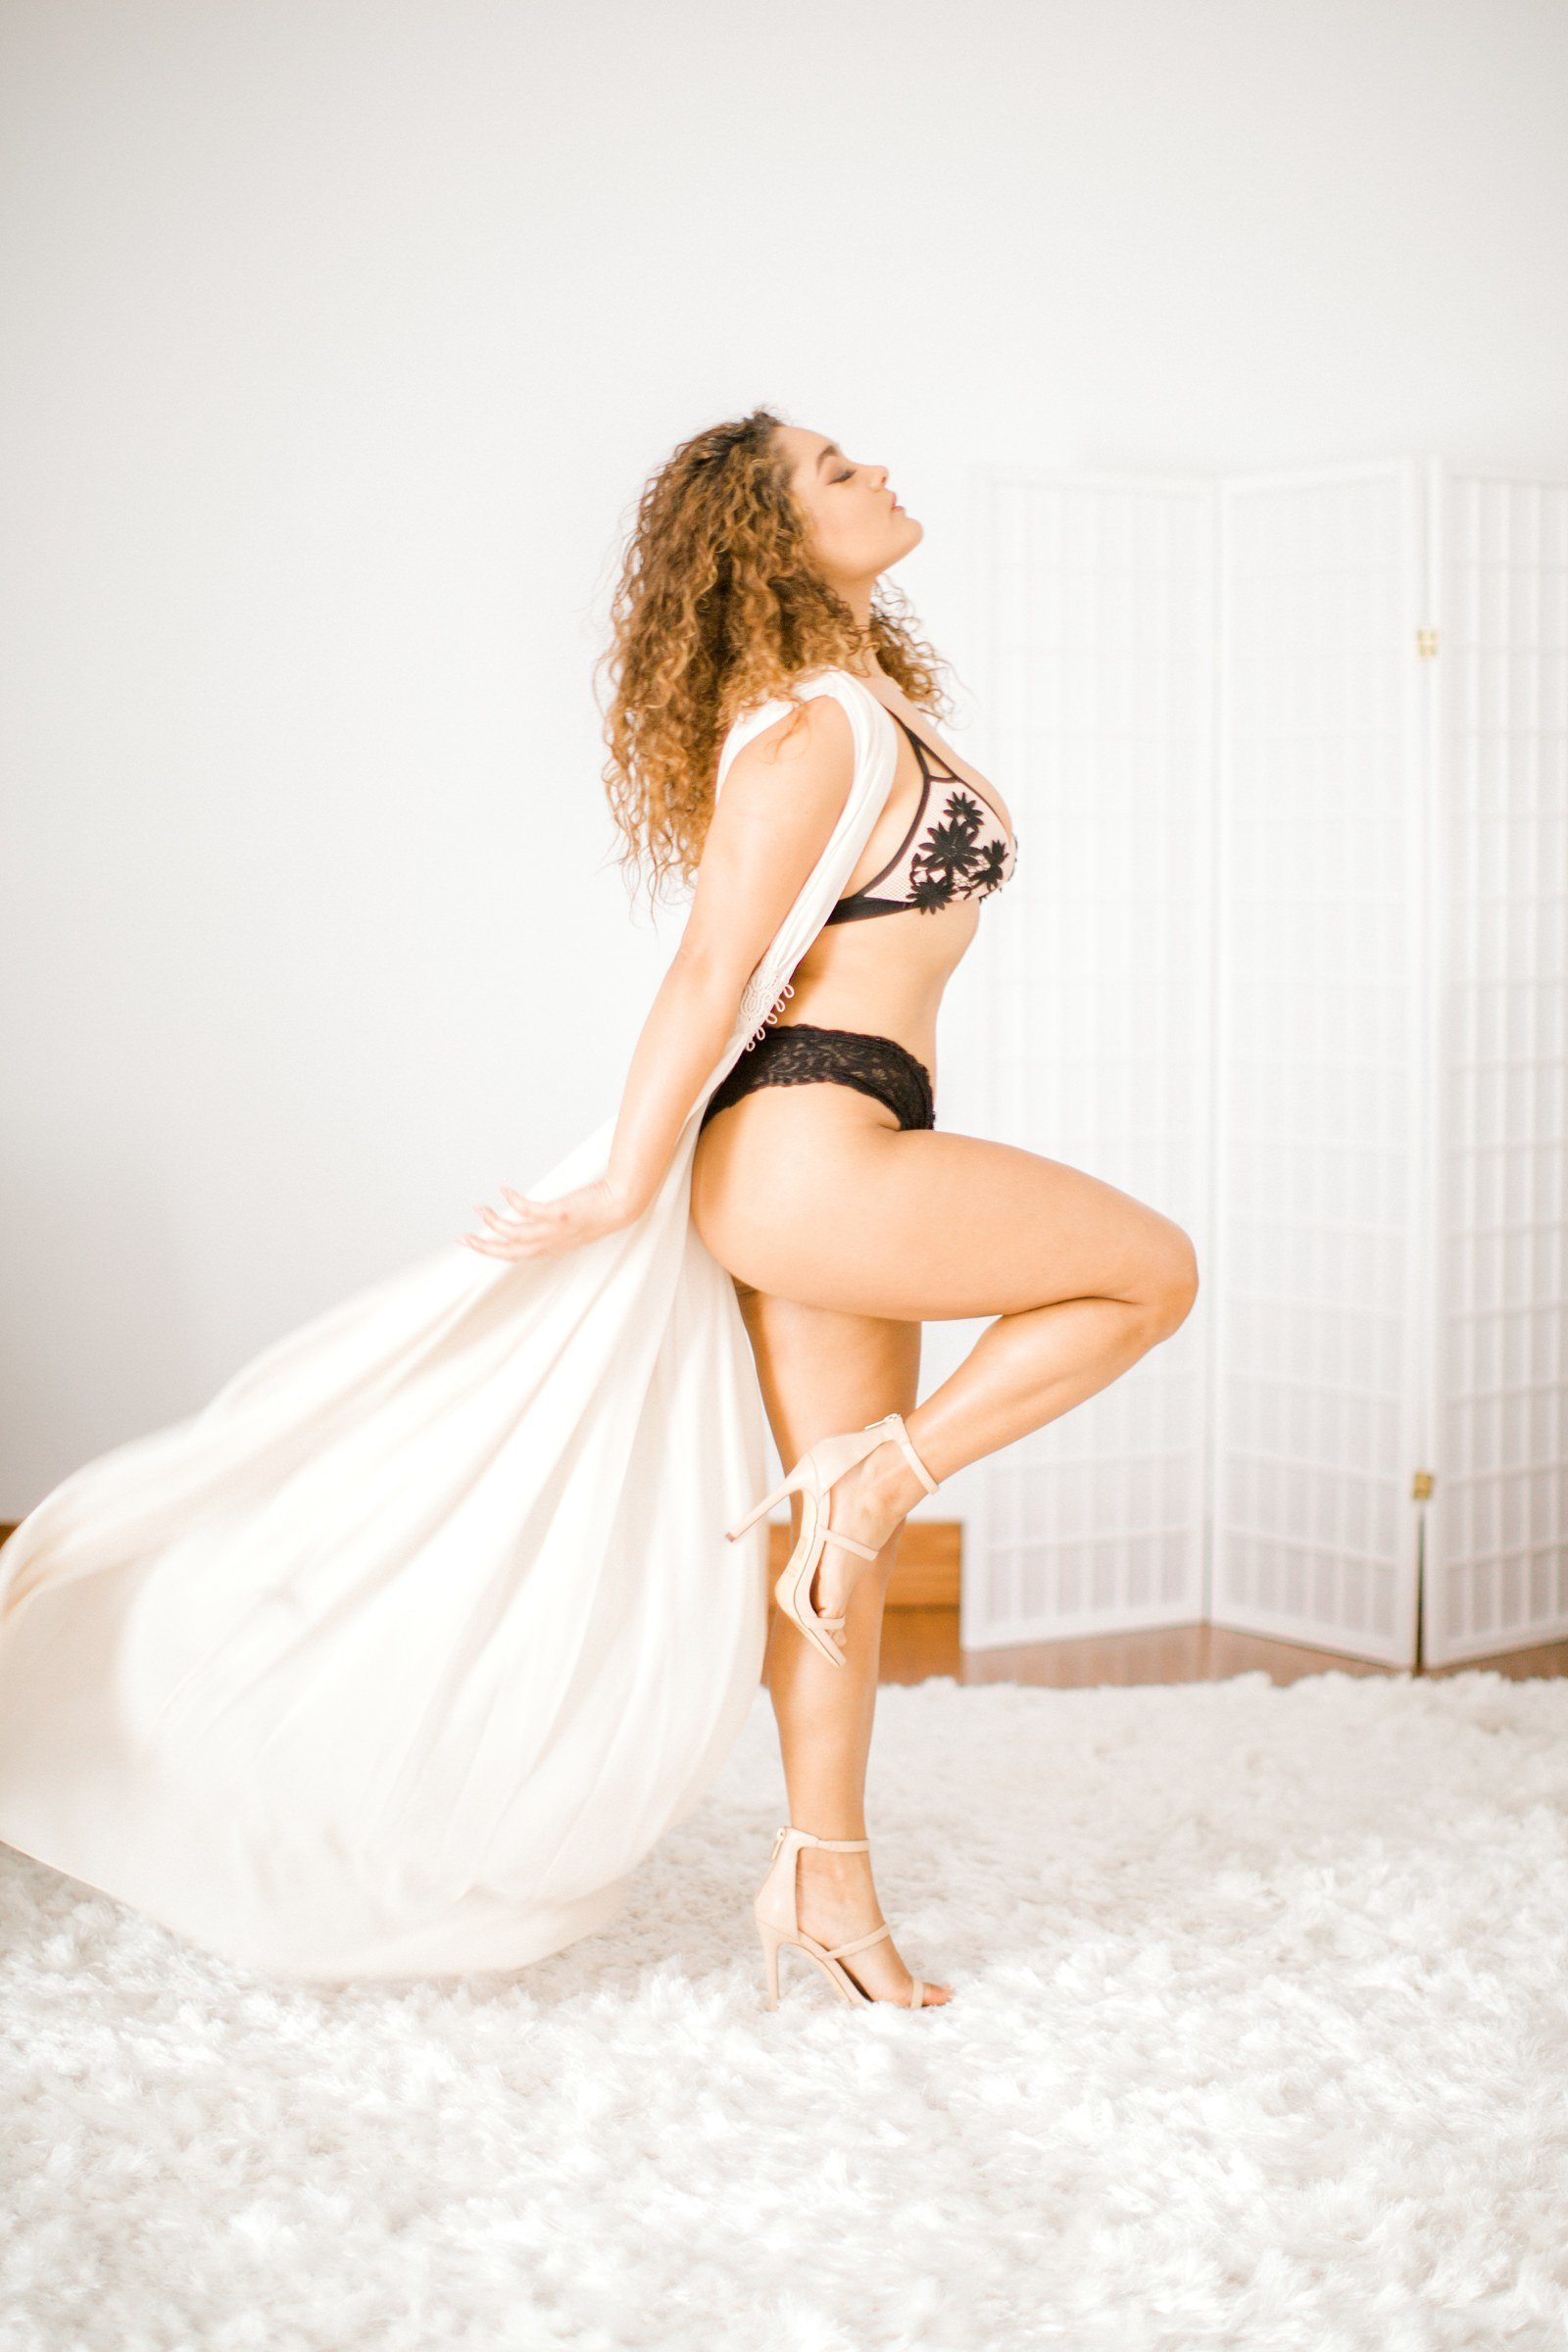 Jazmine Torres Lingerie BHLDN Model Boudoir Light Airy Richmond VA Beach Yours Truly Portraiture-46